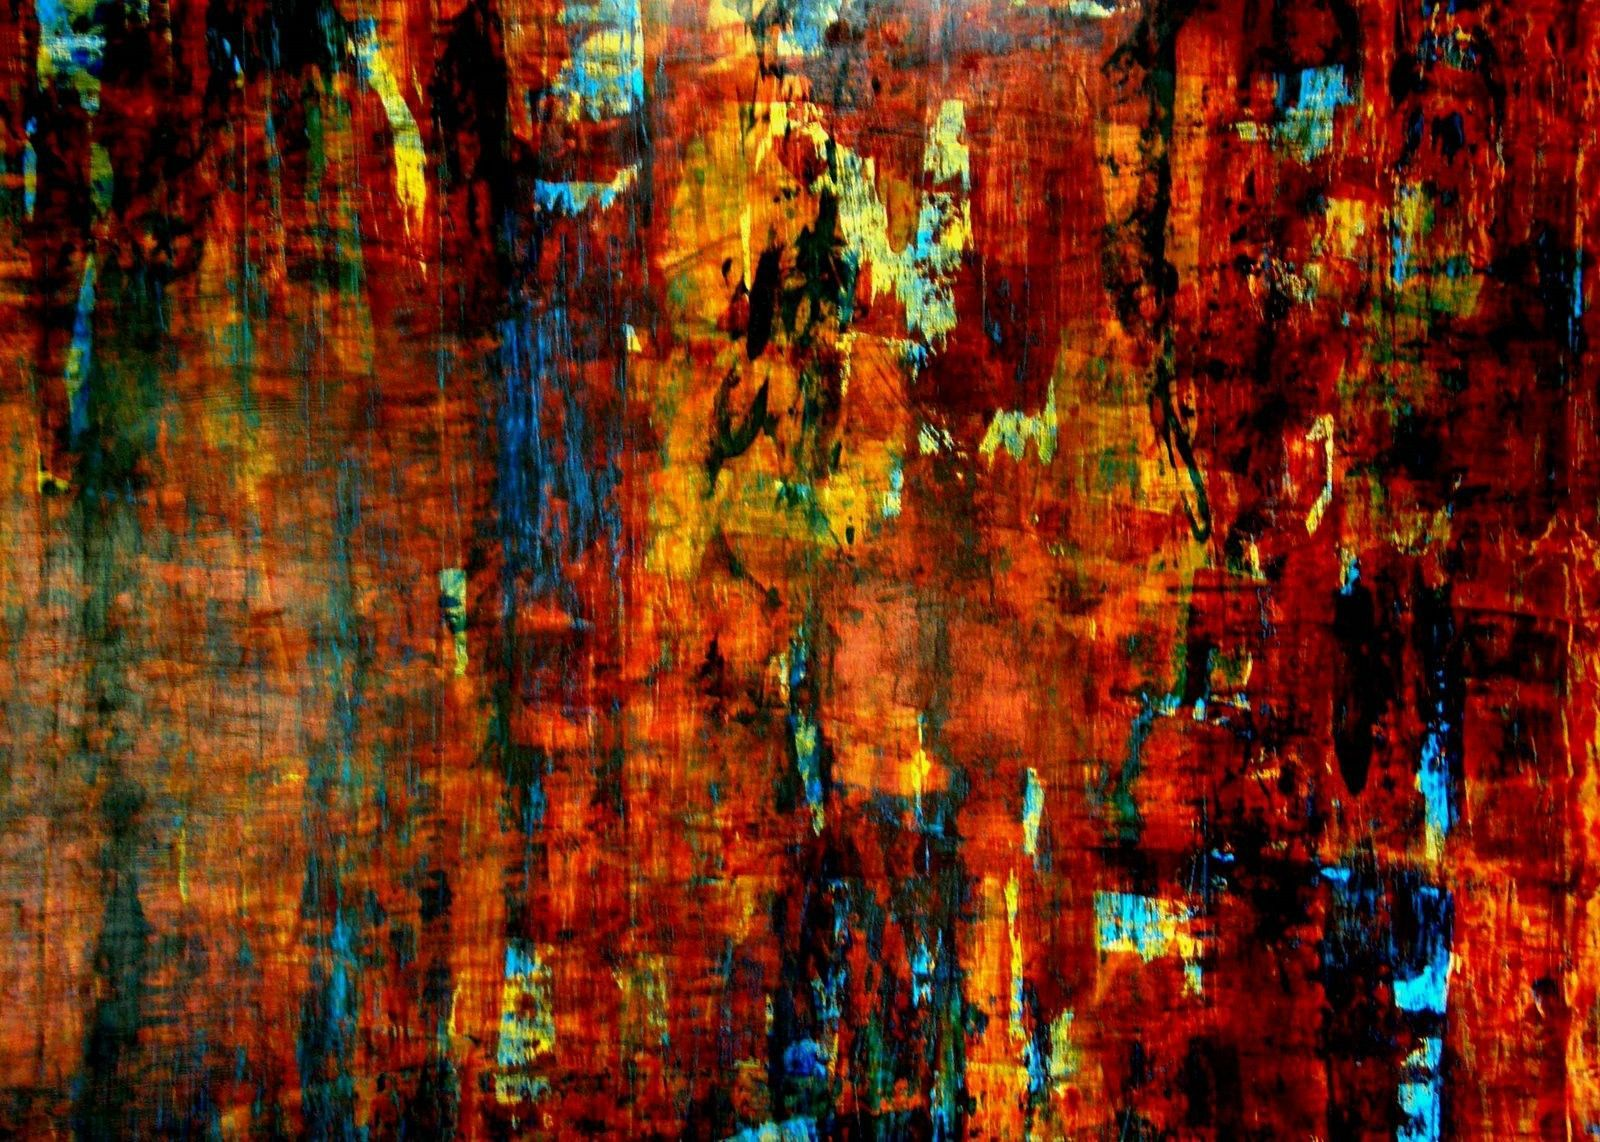 1600x1142 free abstract painting hd wallpapers download   3D Abstract ...